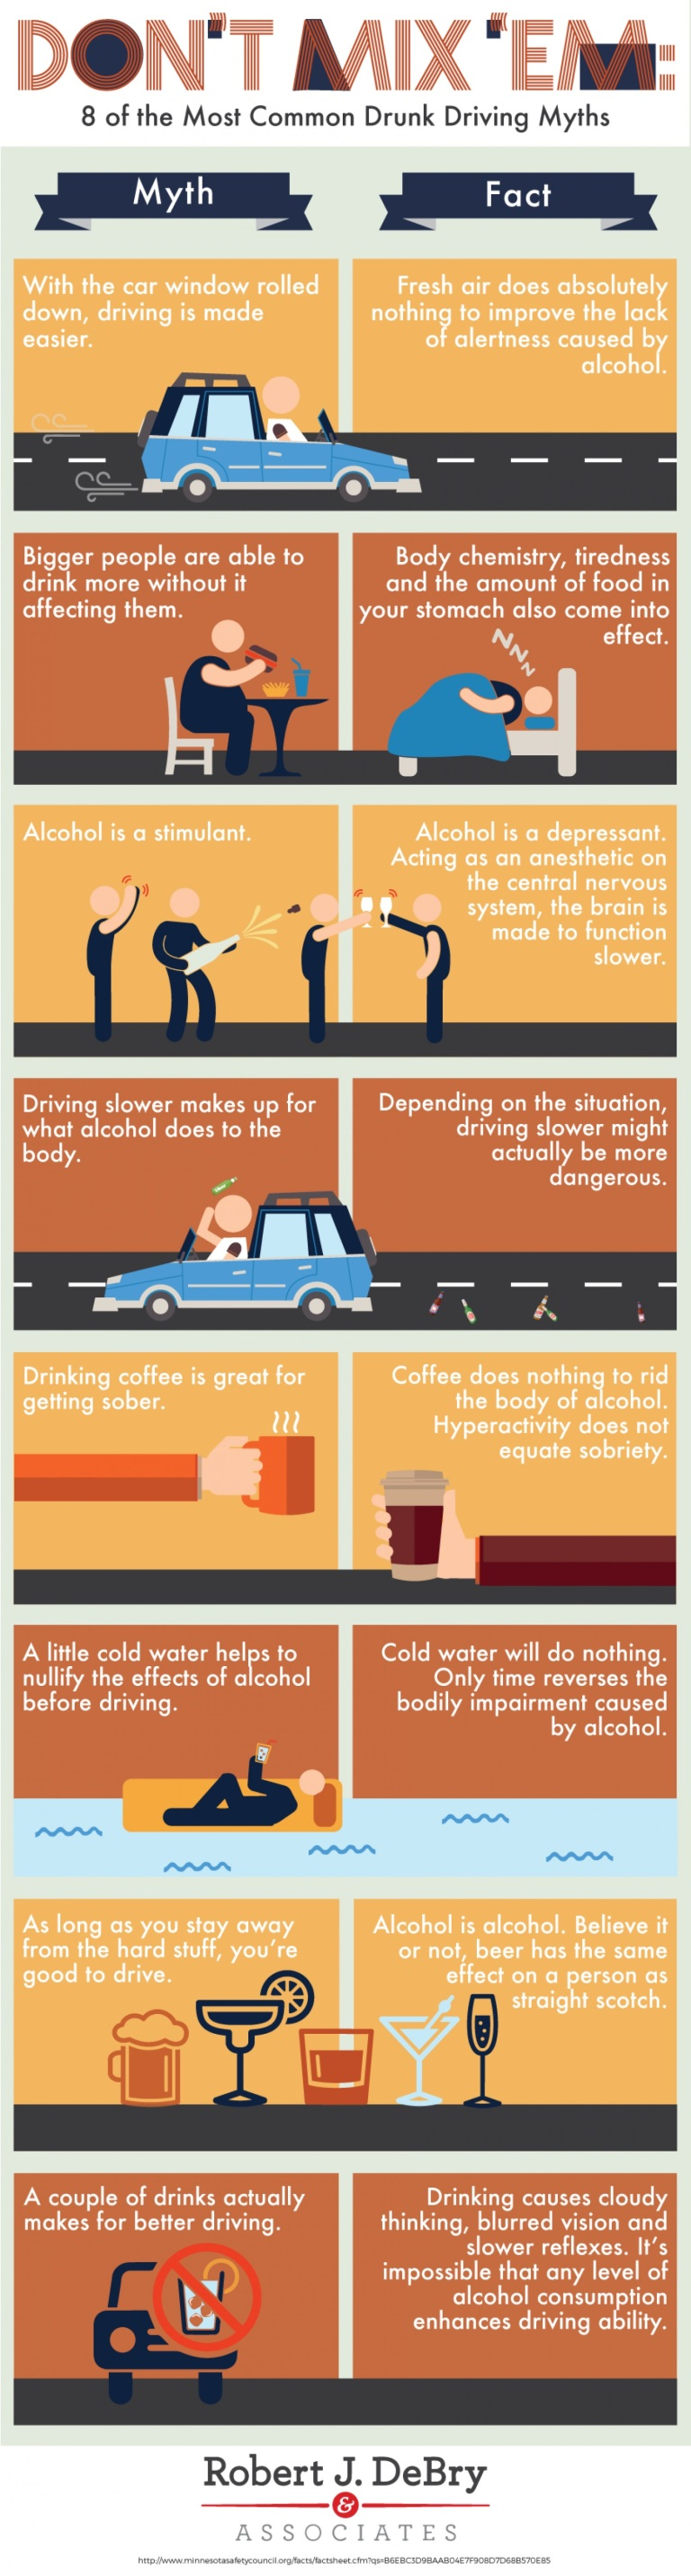 1main-drunk-myths-infographic